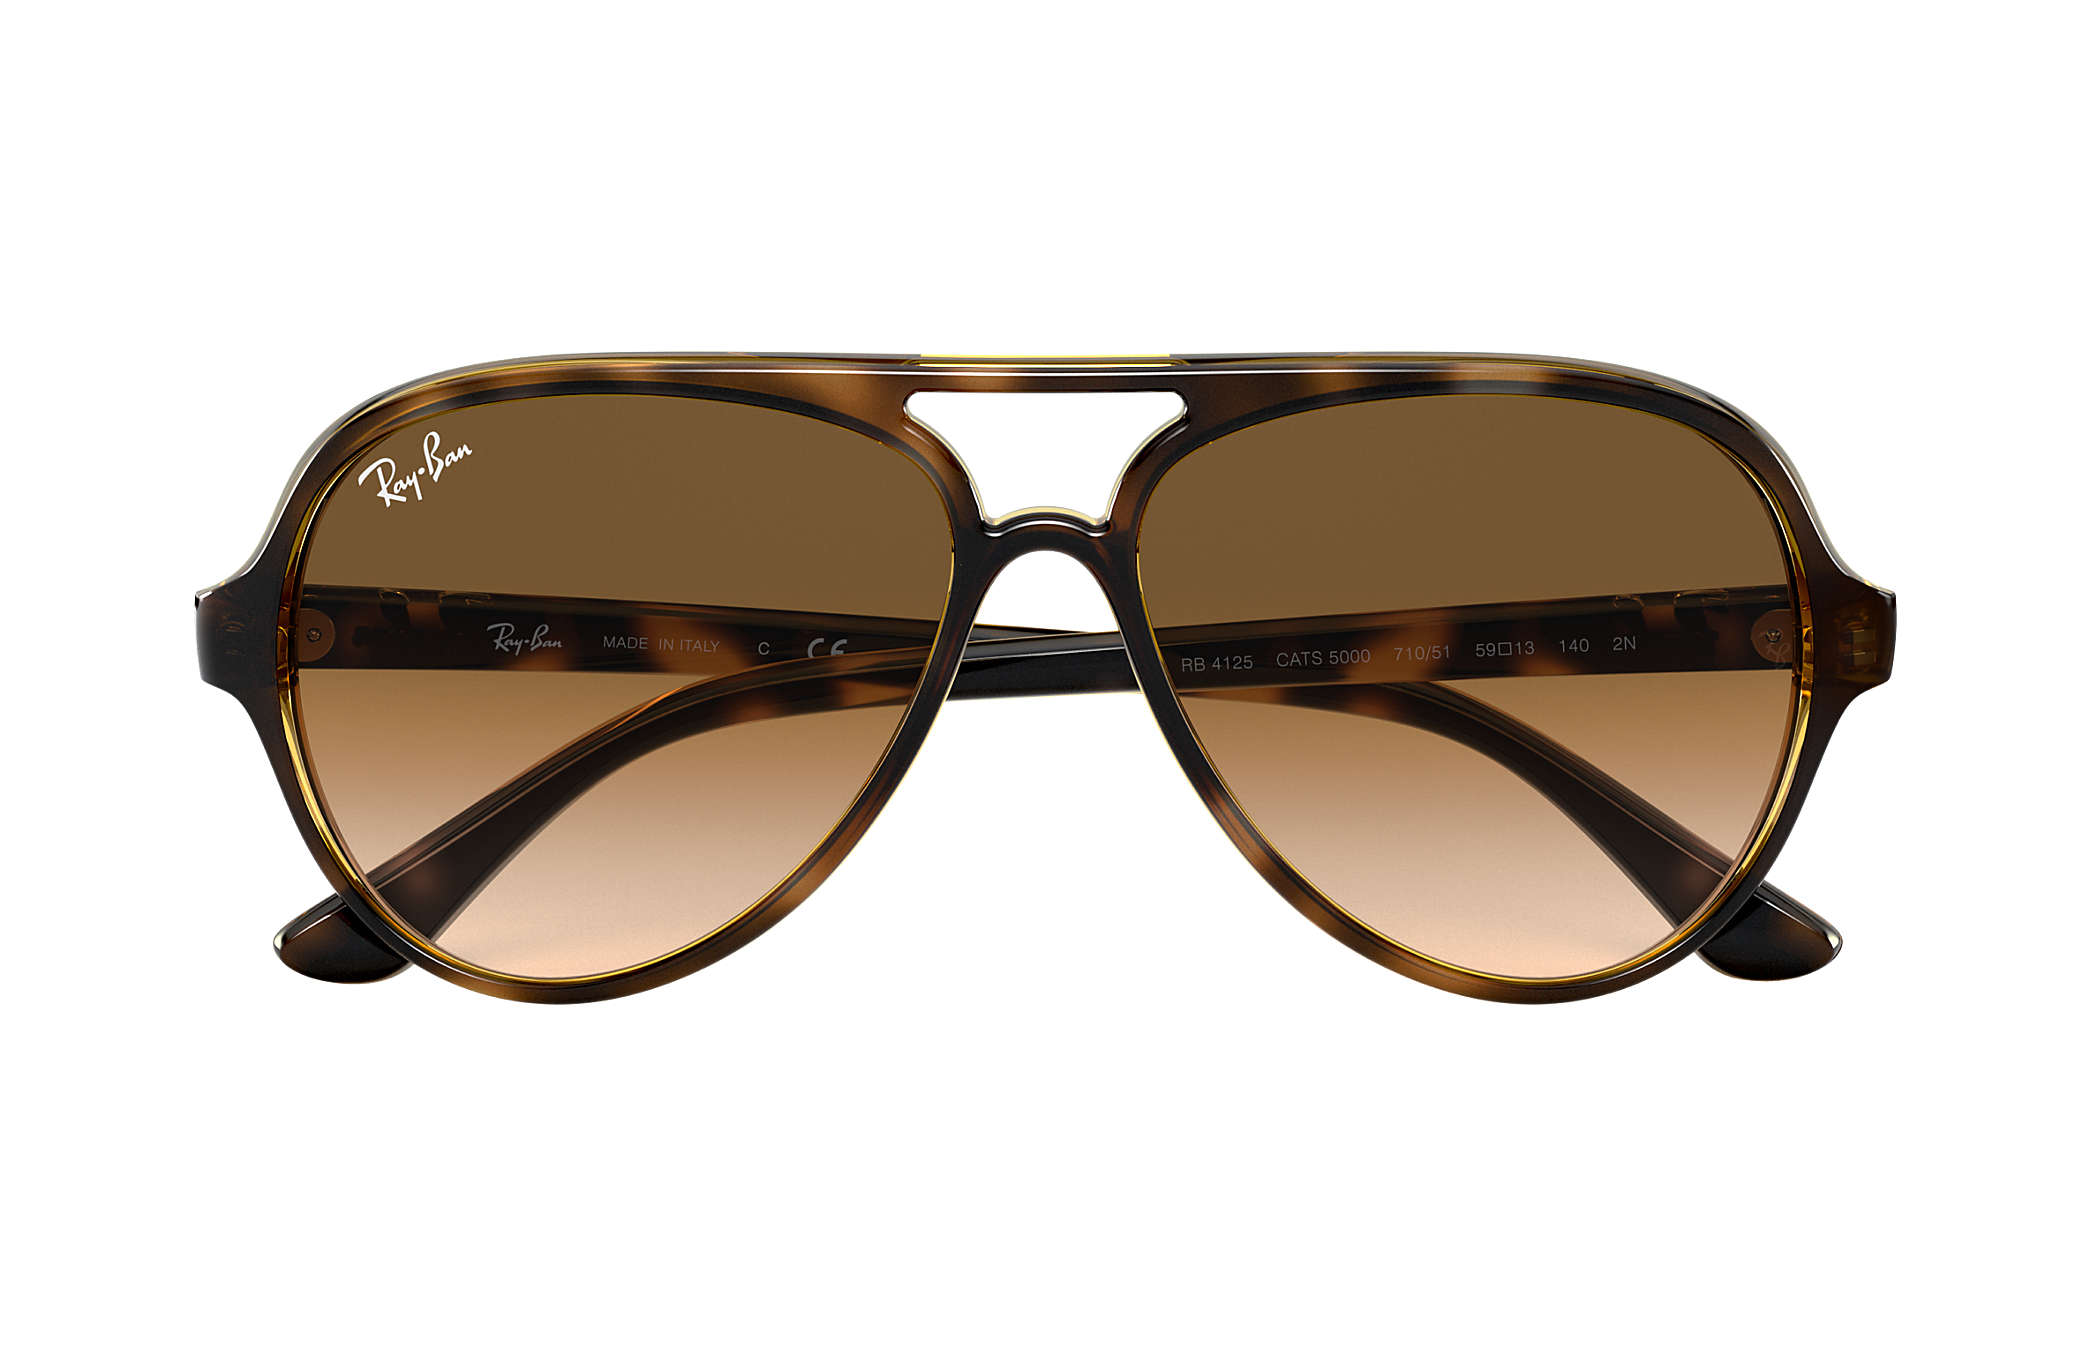 ray ban aviator brown shade  Ray-Ban Cats 5000 Classic Tortoise, RB4125